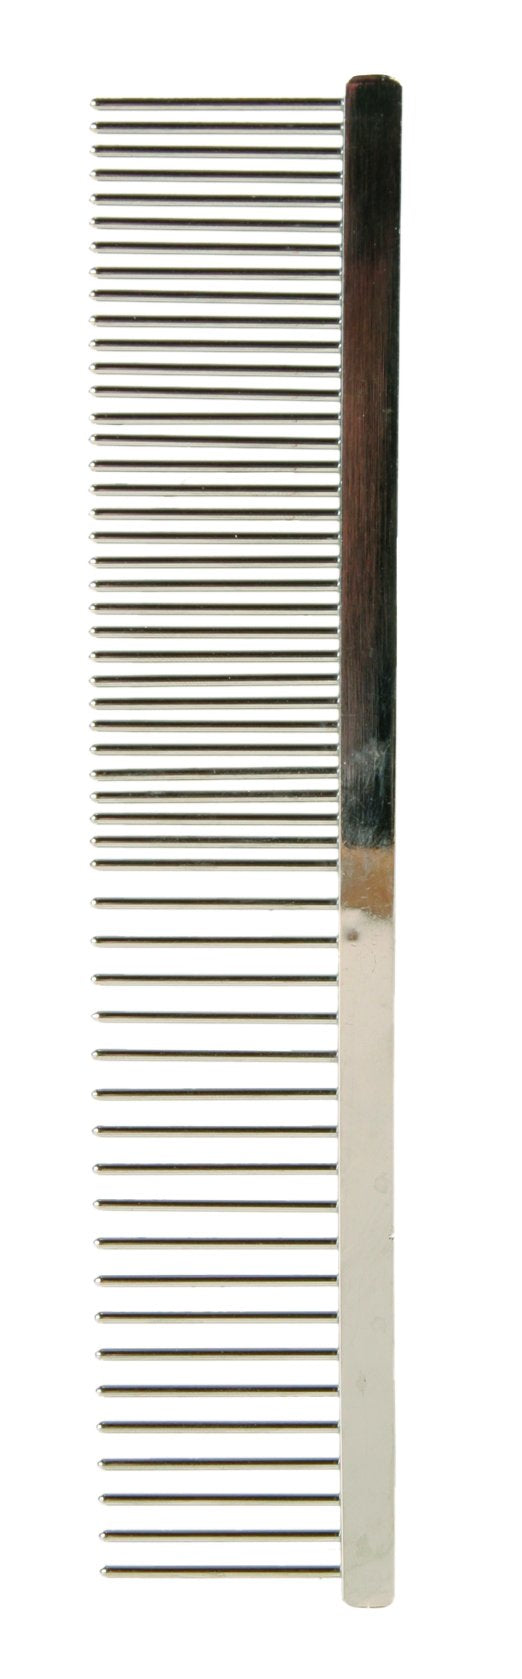 2395 Metal comb, medium/wide teeth, 16 cm